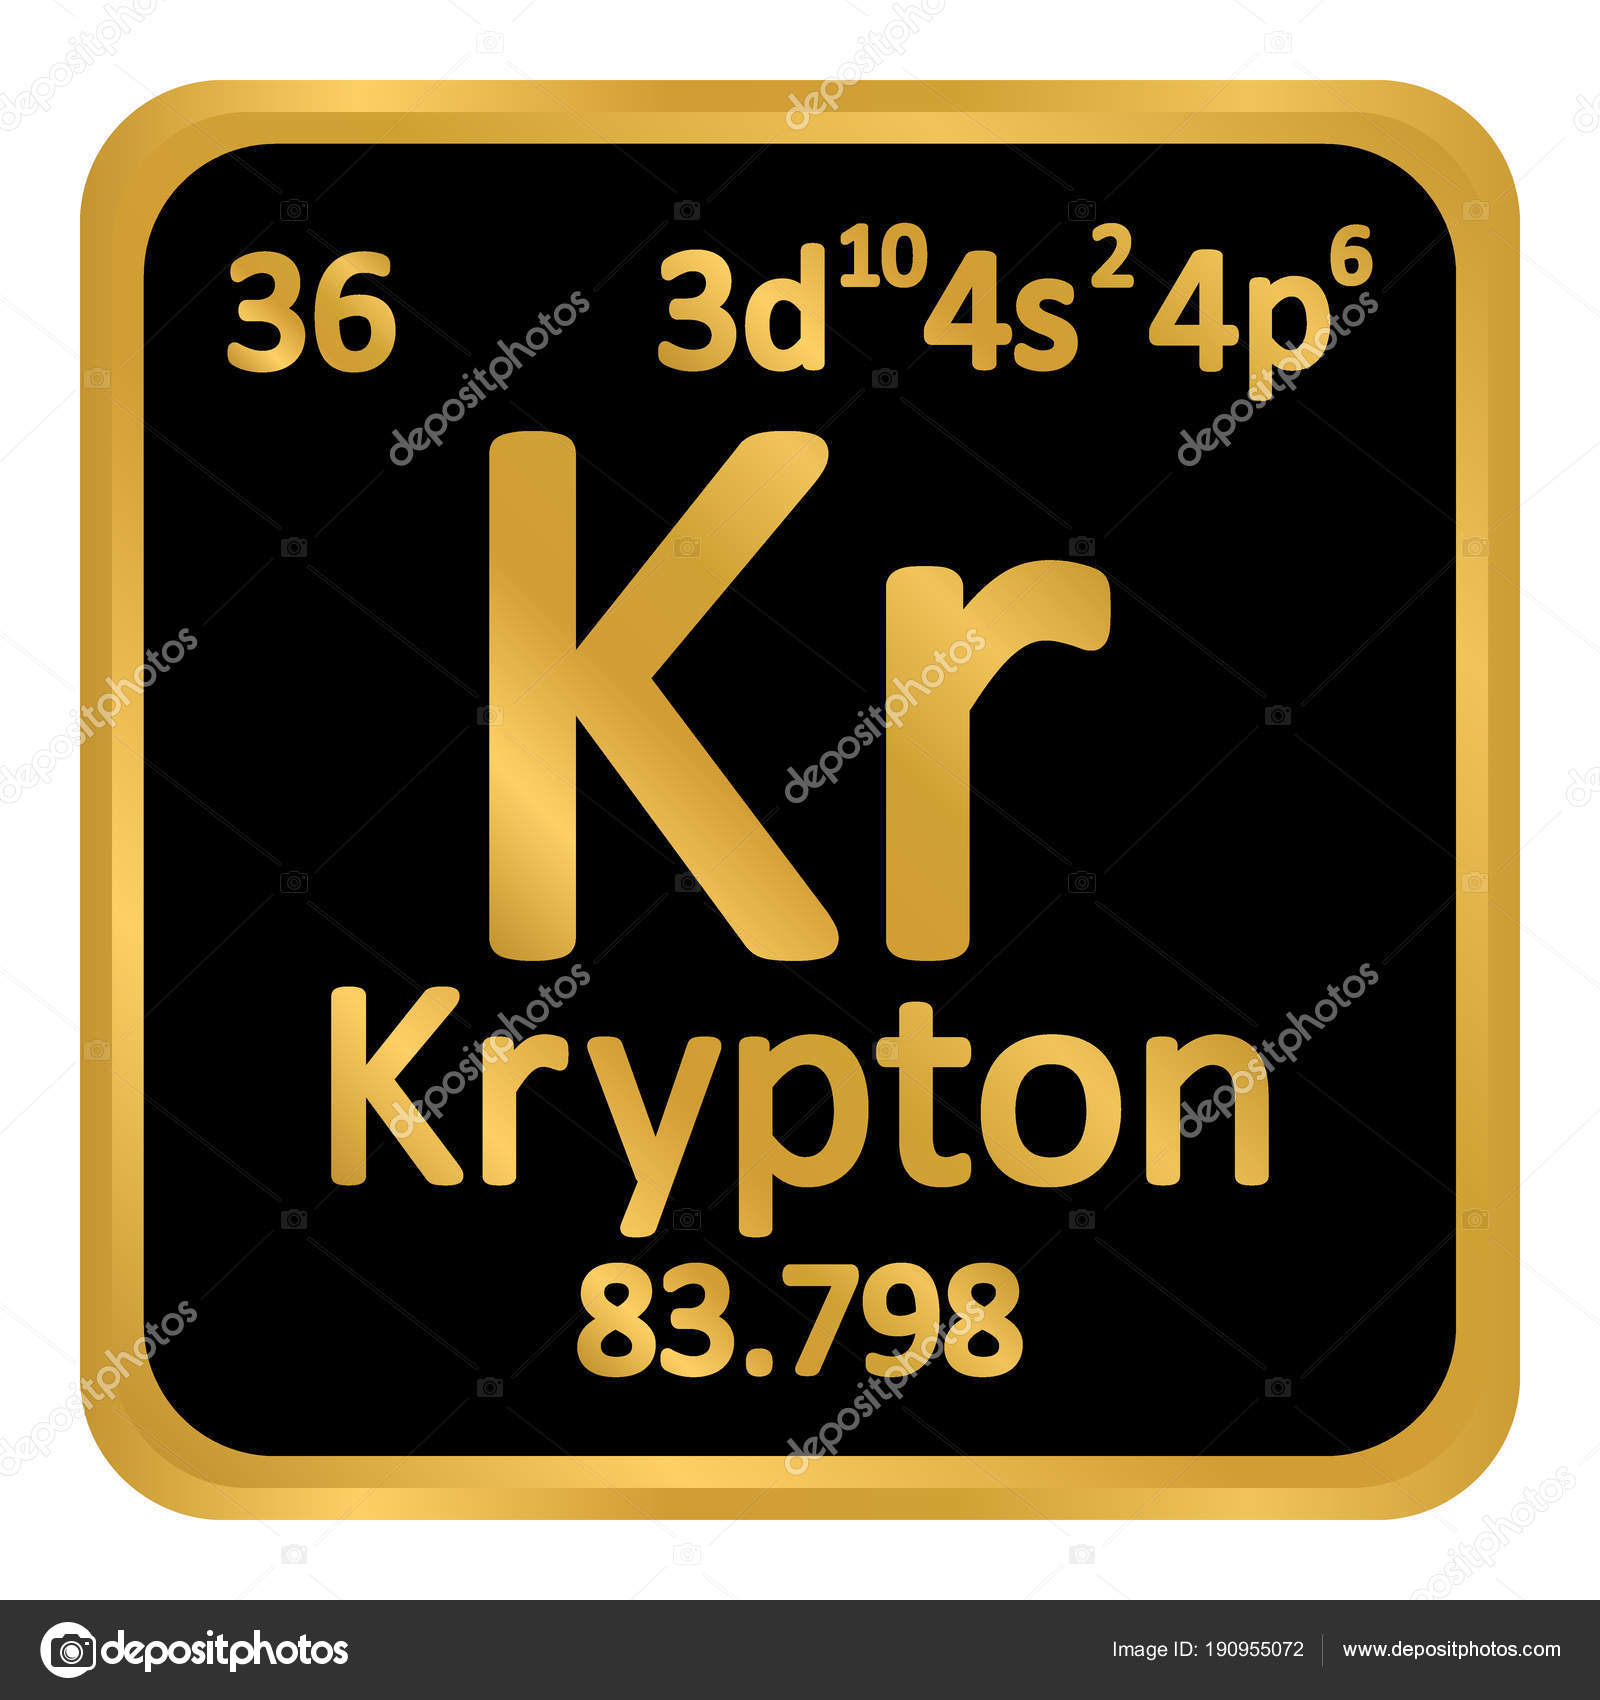 Periodic table element krypton icon stock vector konstsem periodic table element krypton icon stock vector urtaz Choice Image